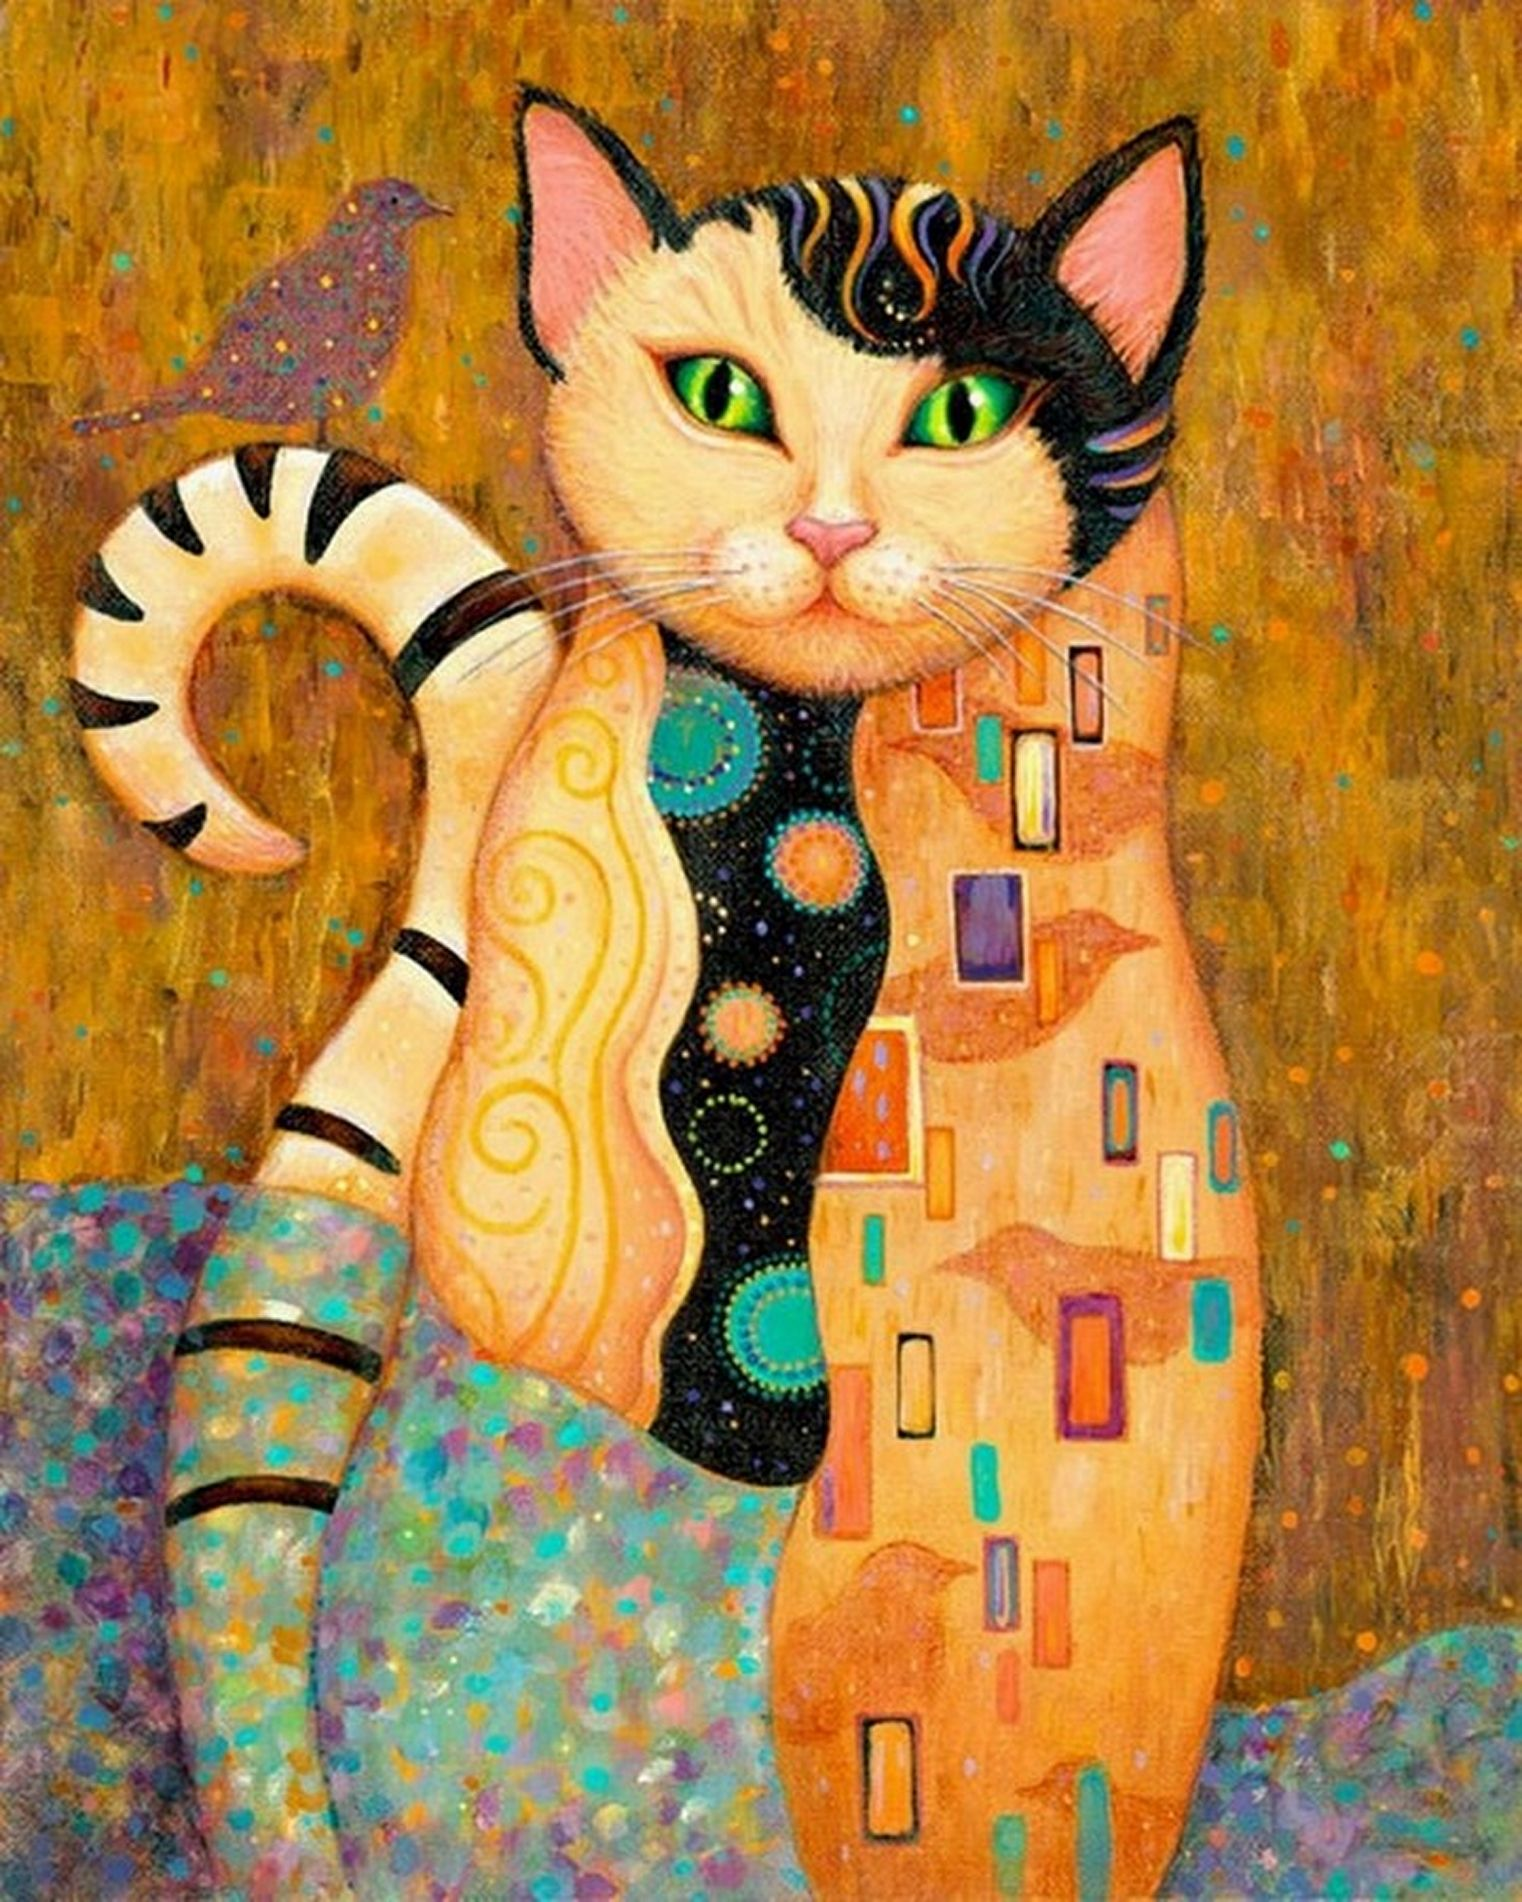 Cuadros De Klimt Gustav Pin By Charly Kuno On Arte Klimt Gustav Cat Art Klimt